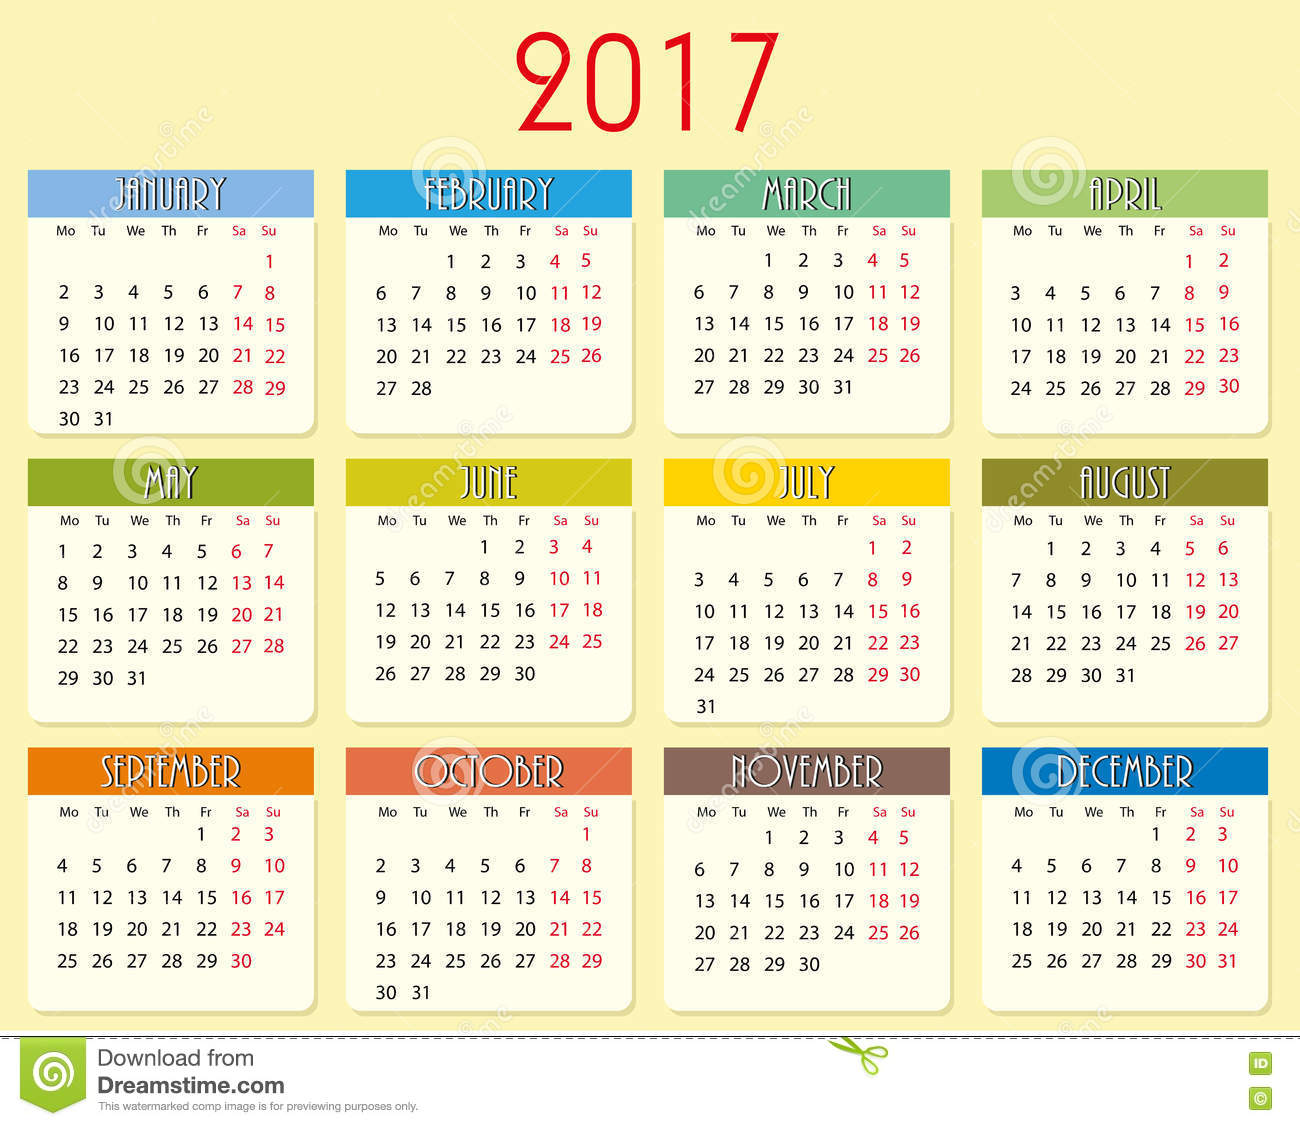 Year To Date Calendar : Calendar in french search results